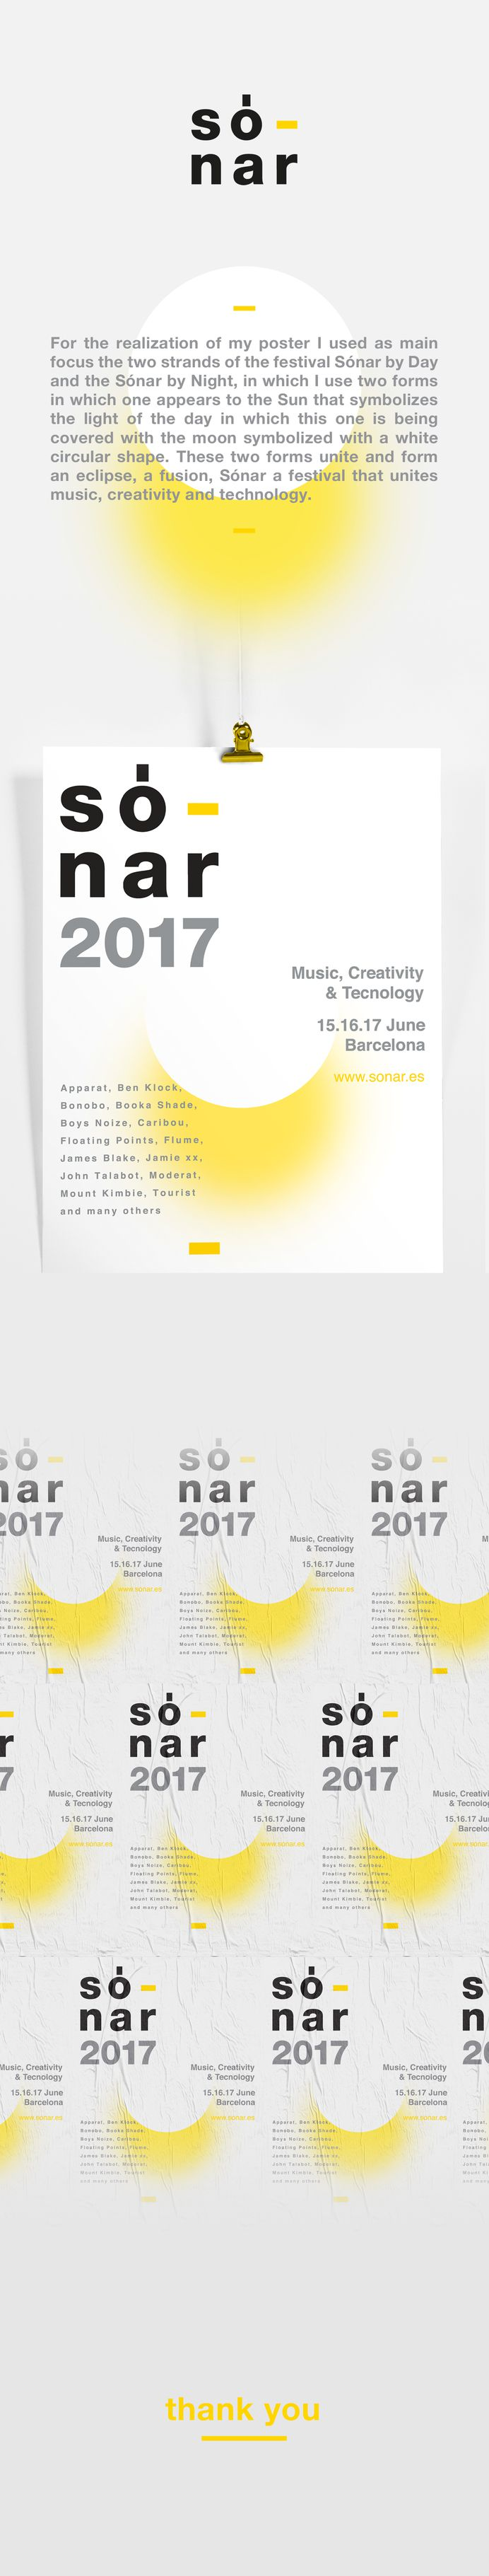 Sonar BCN - Poster on Behance #poster #sonar #barcelona #2017 #graphicdesign #yellow